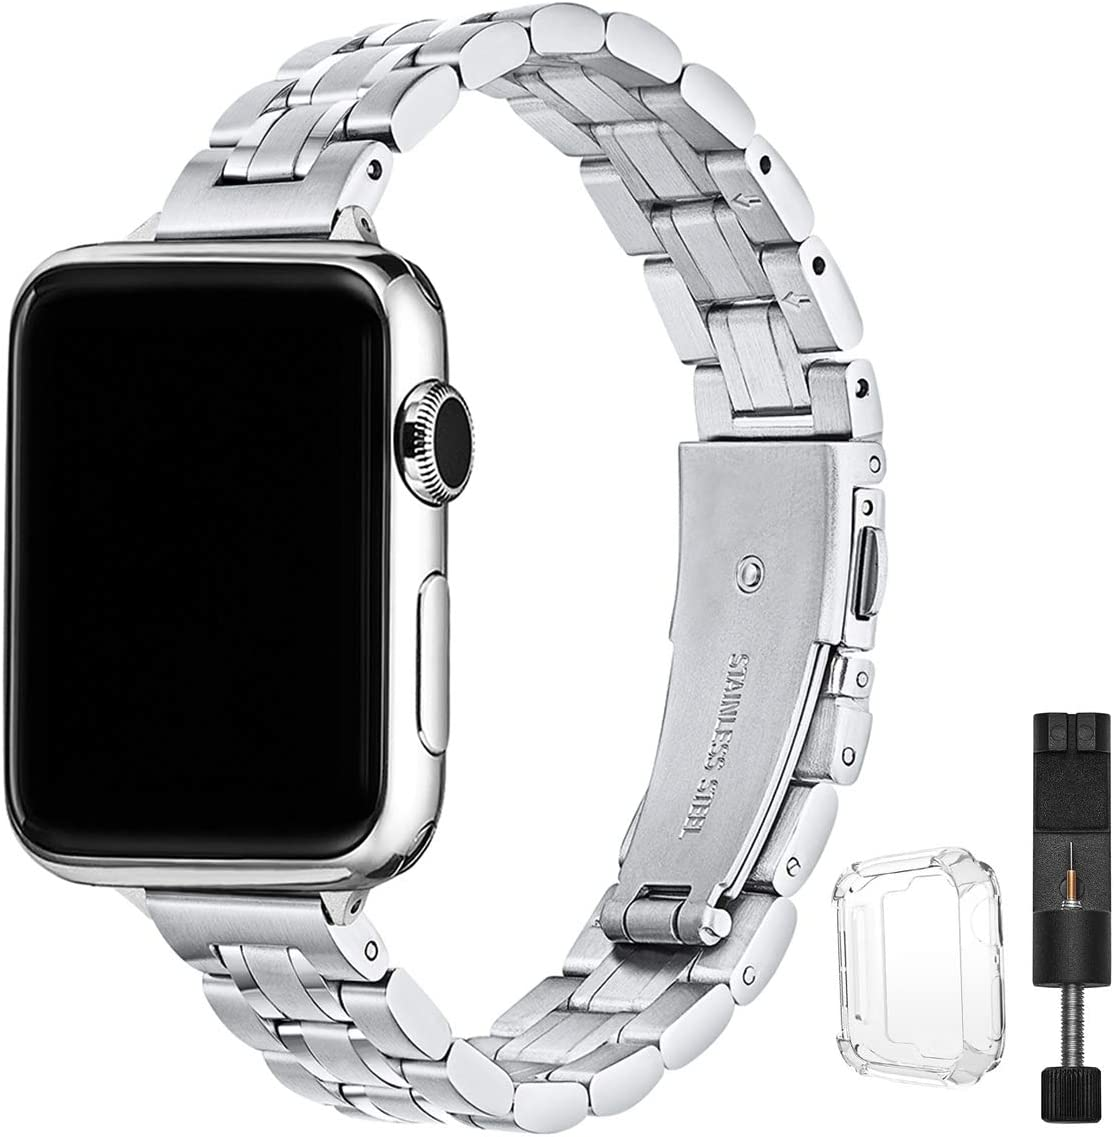 STIROLL Thin Replacement Band Compatible for Apple Watch 38mm 40mm 42mm 44mm, Stainless Steel Metal Wristband Women Men for iWatch SE Series 6/5/4/3/2/1 (Silver, 42mm/44mm)